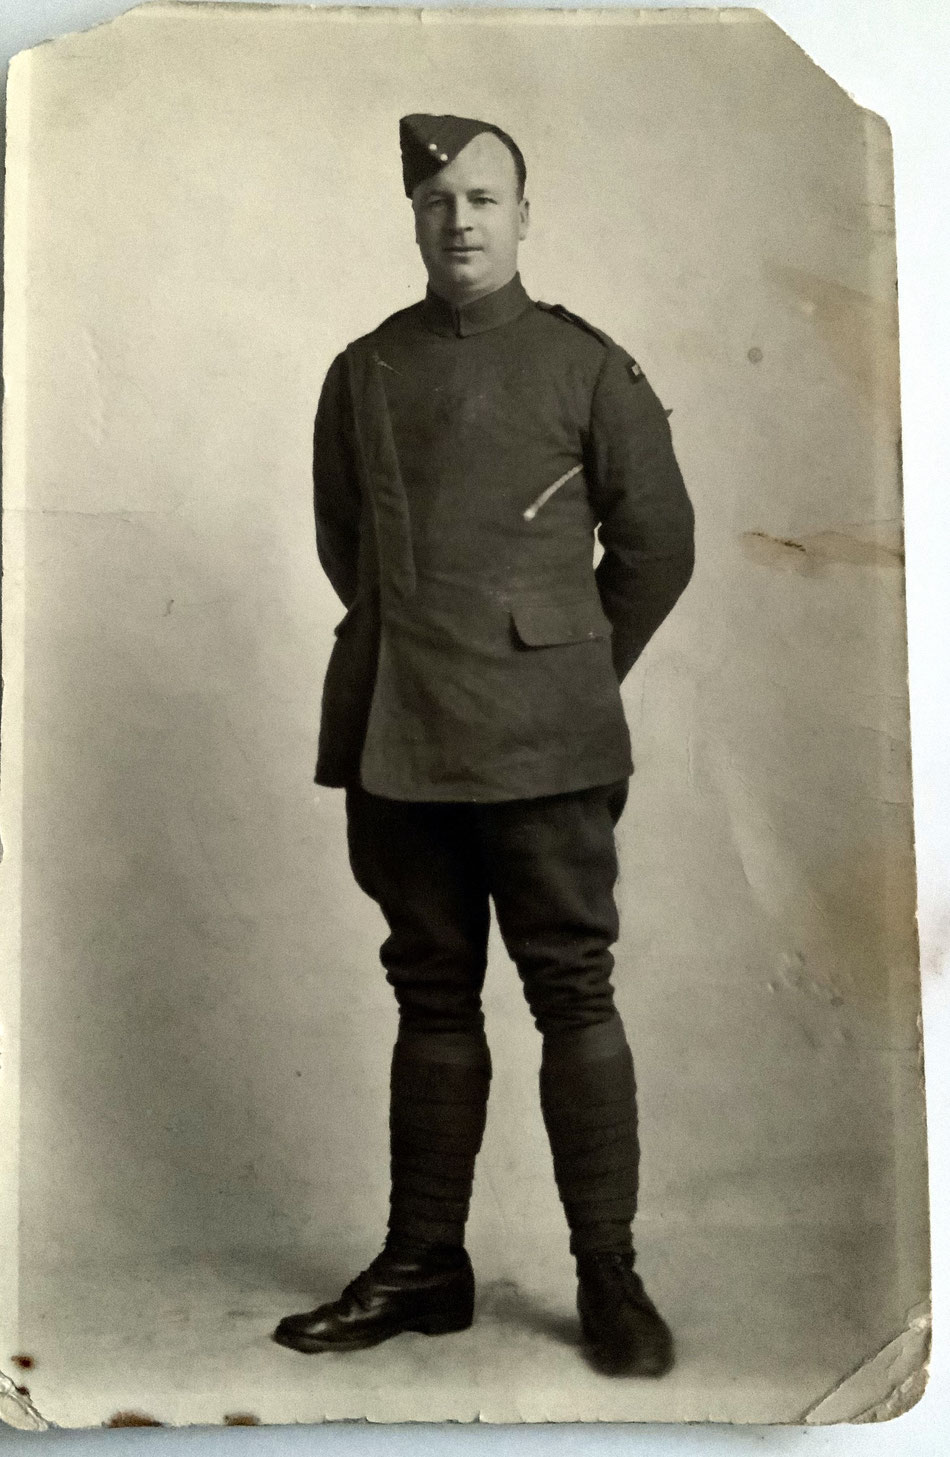 Dispatch rider and Air Mech George James Knight, who served at Azelot, France in 1918